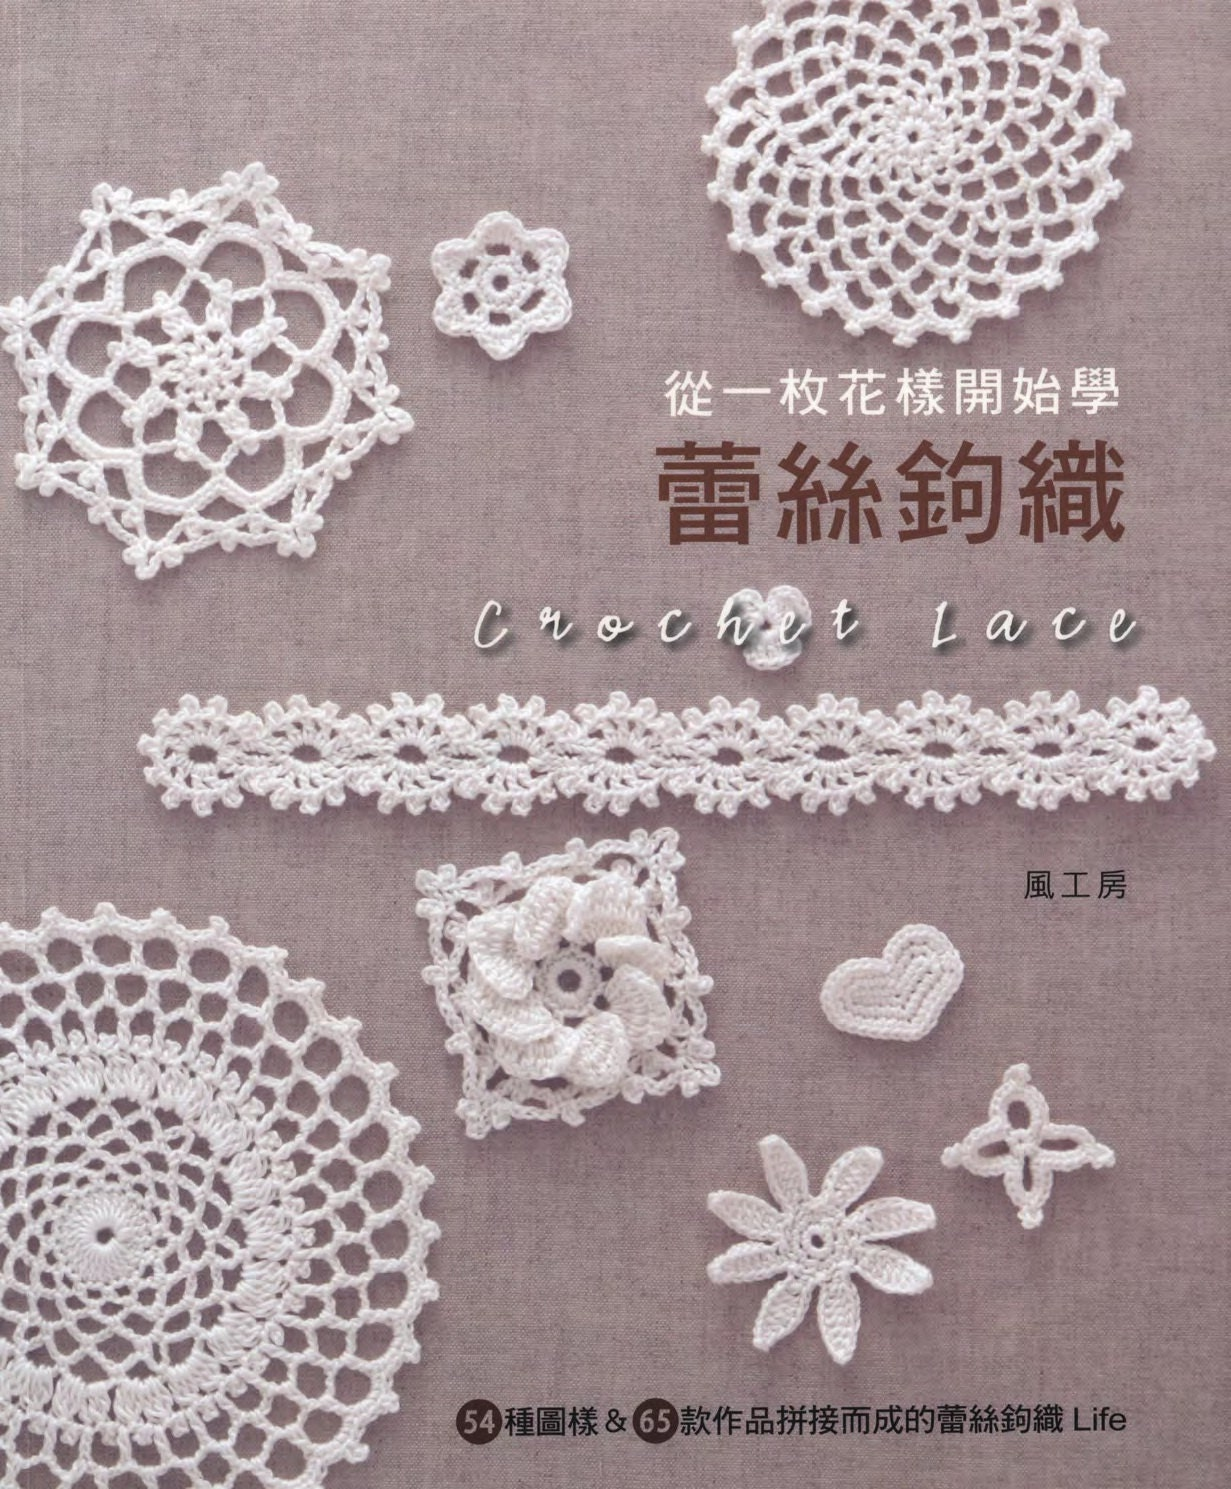 Crochet motif patterns crochet edging patterns crochet